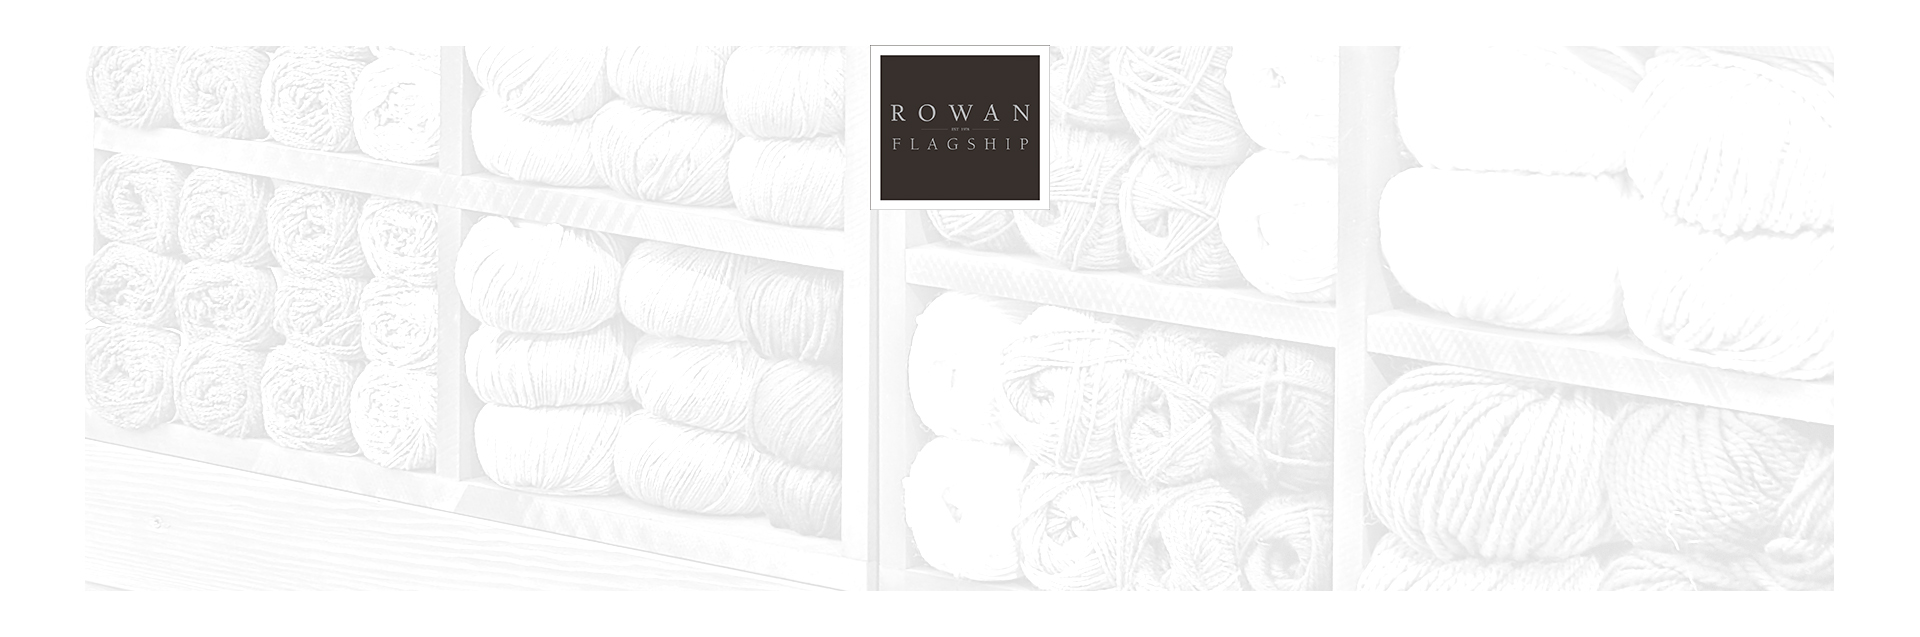 Dyed in the Wool is Pittsburgh's premier store for all Rowan yarns, patterns, and accessories. Visit our cozy and comfortable shop to see and touch all the yarns, plus experience the broad range of samples knitted in Rowan Yarns in the shop.